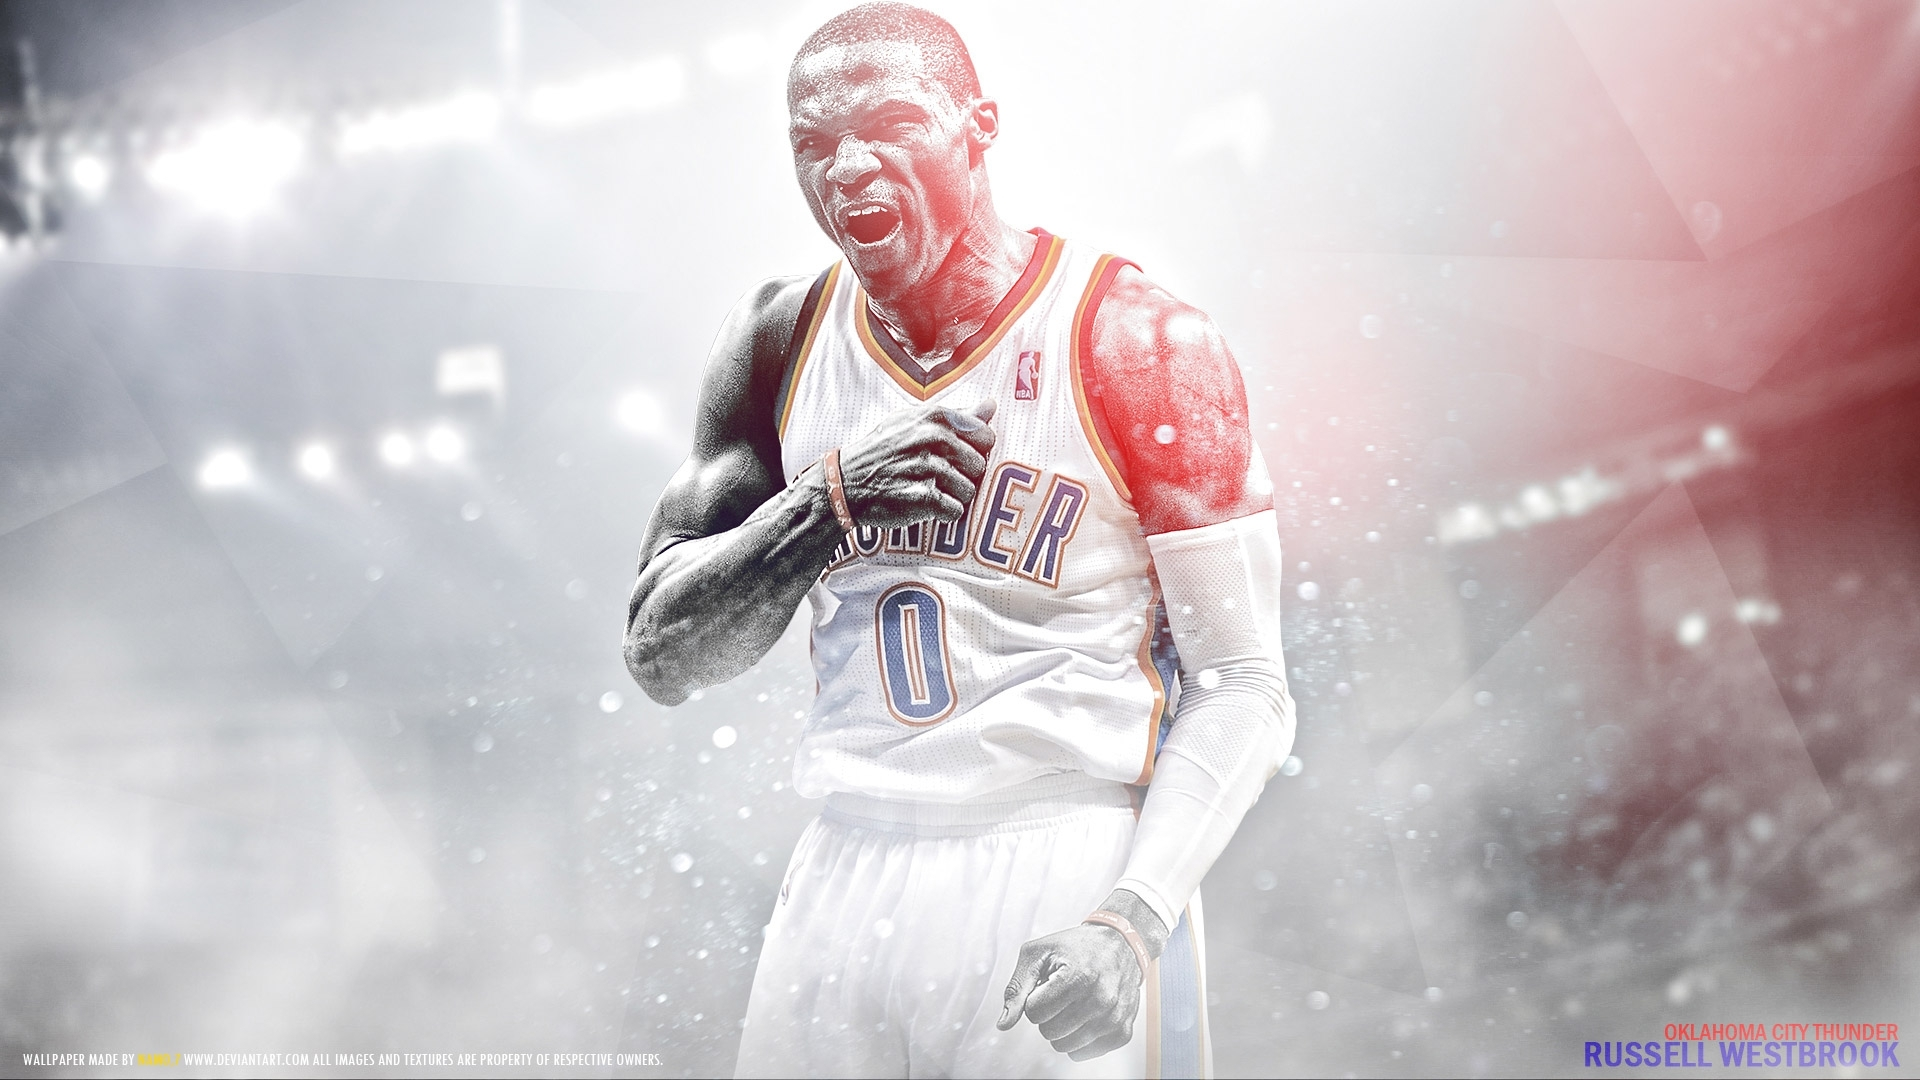 russell westbrook wallpapers | basketball wallpapers at